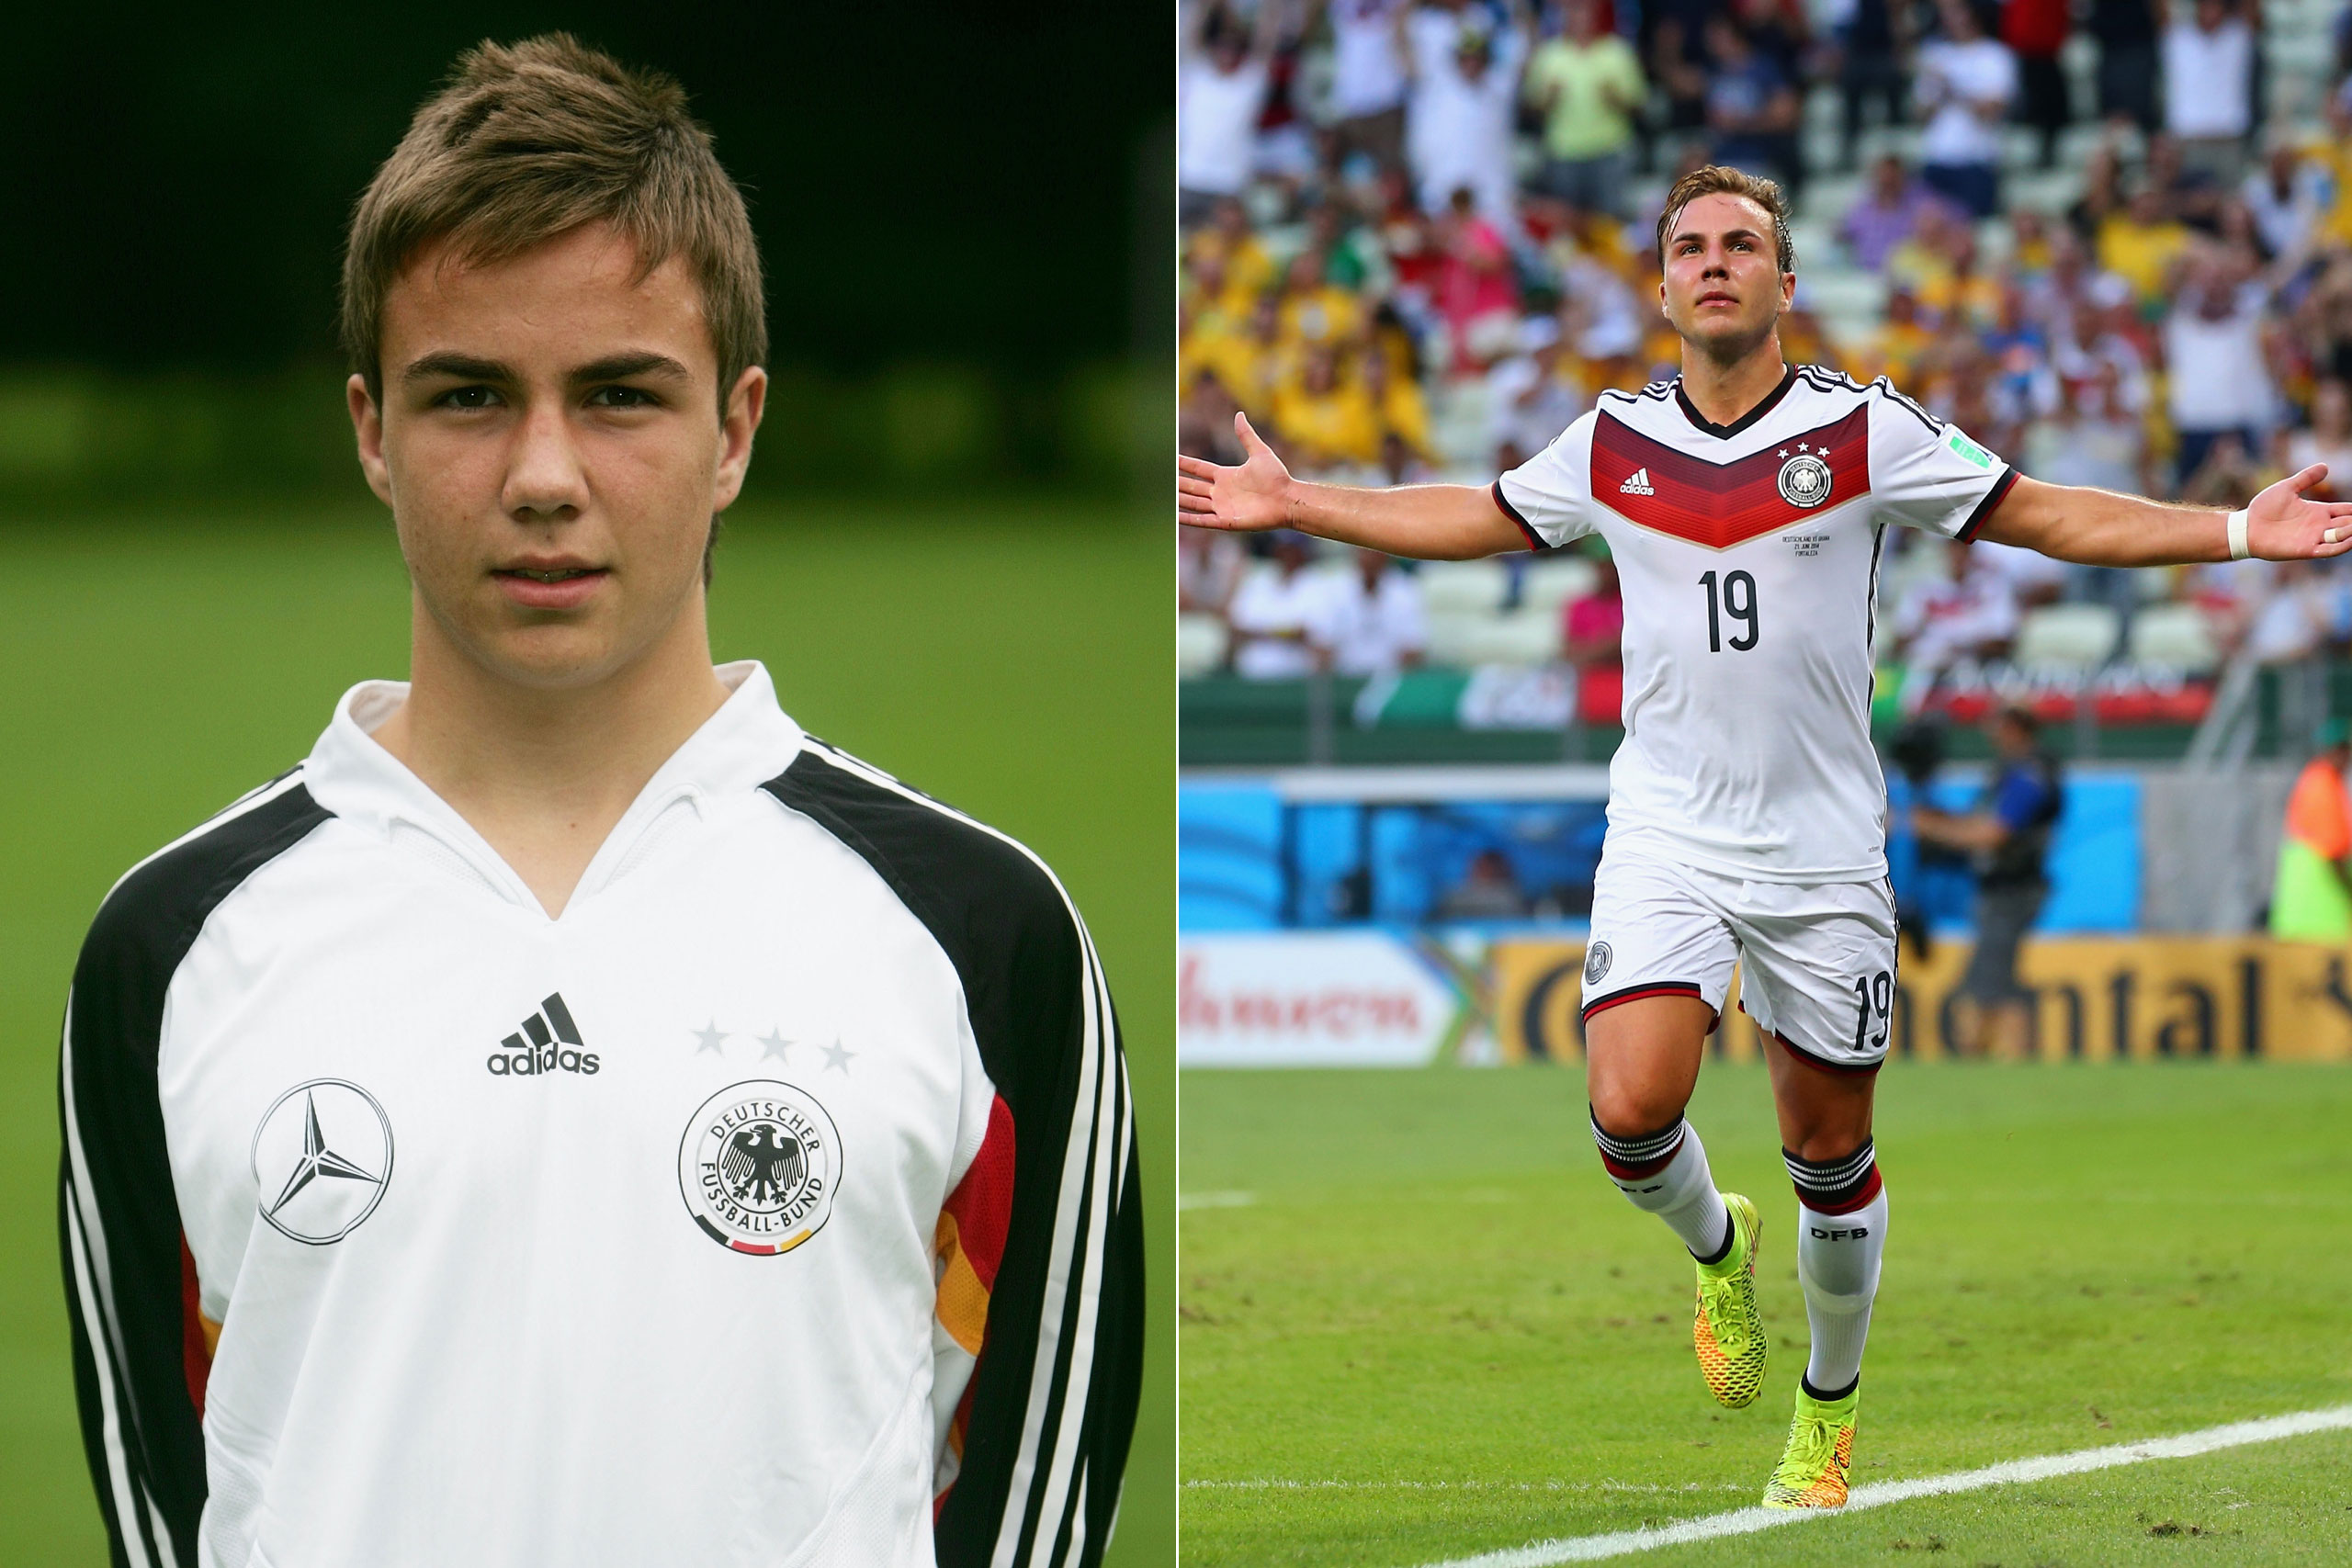 Left: Mario Goetze in 2007; Right: Mario Goetze playing for Germany at the FIFA World Cup in Brazil, 2014.